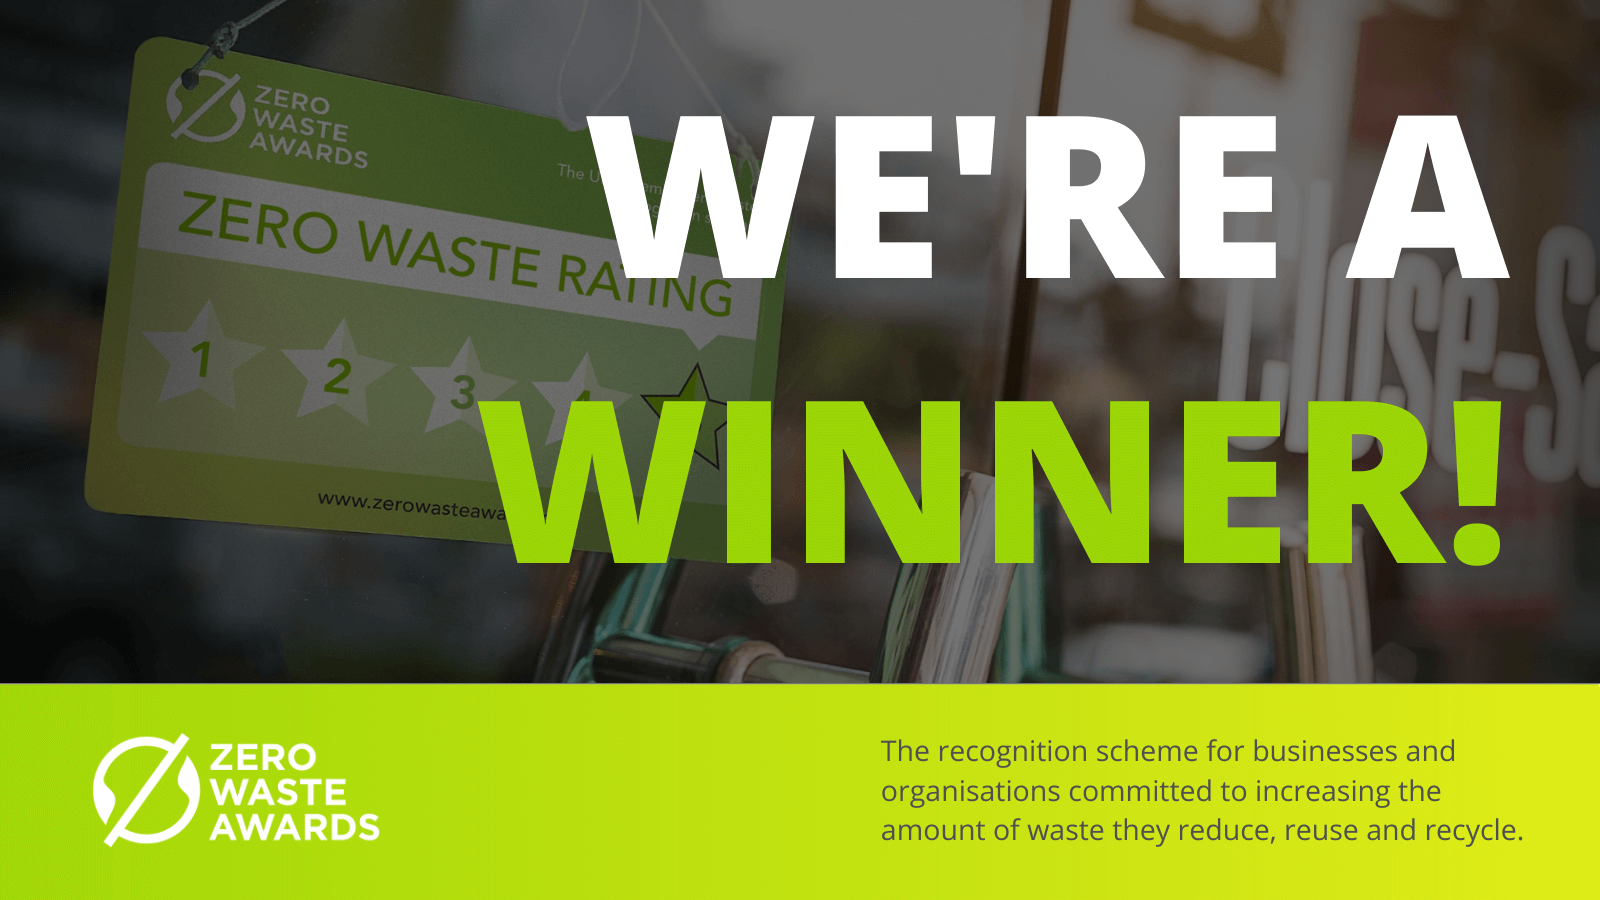 UBQ Materials has been awarded at the Zero Waste Awards